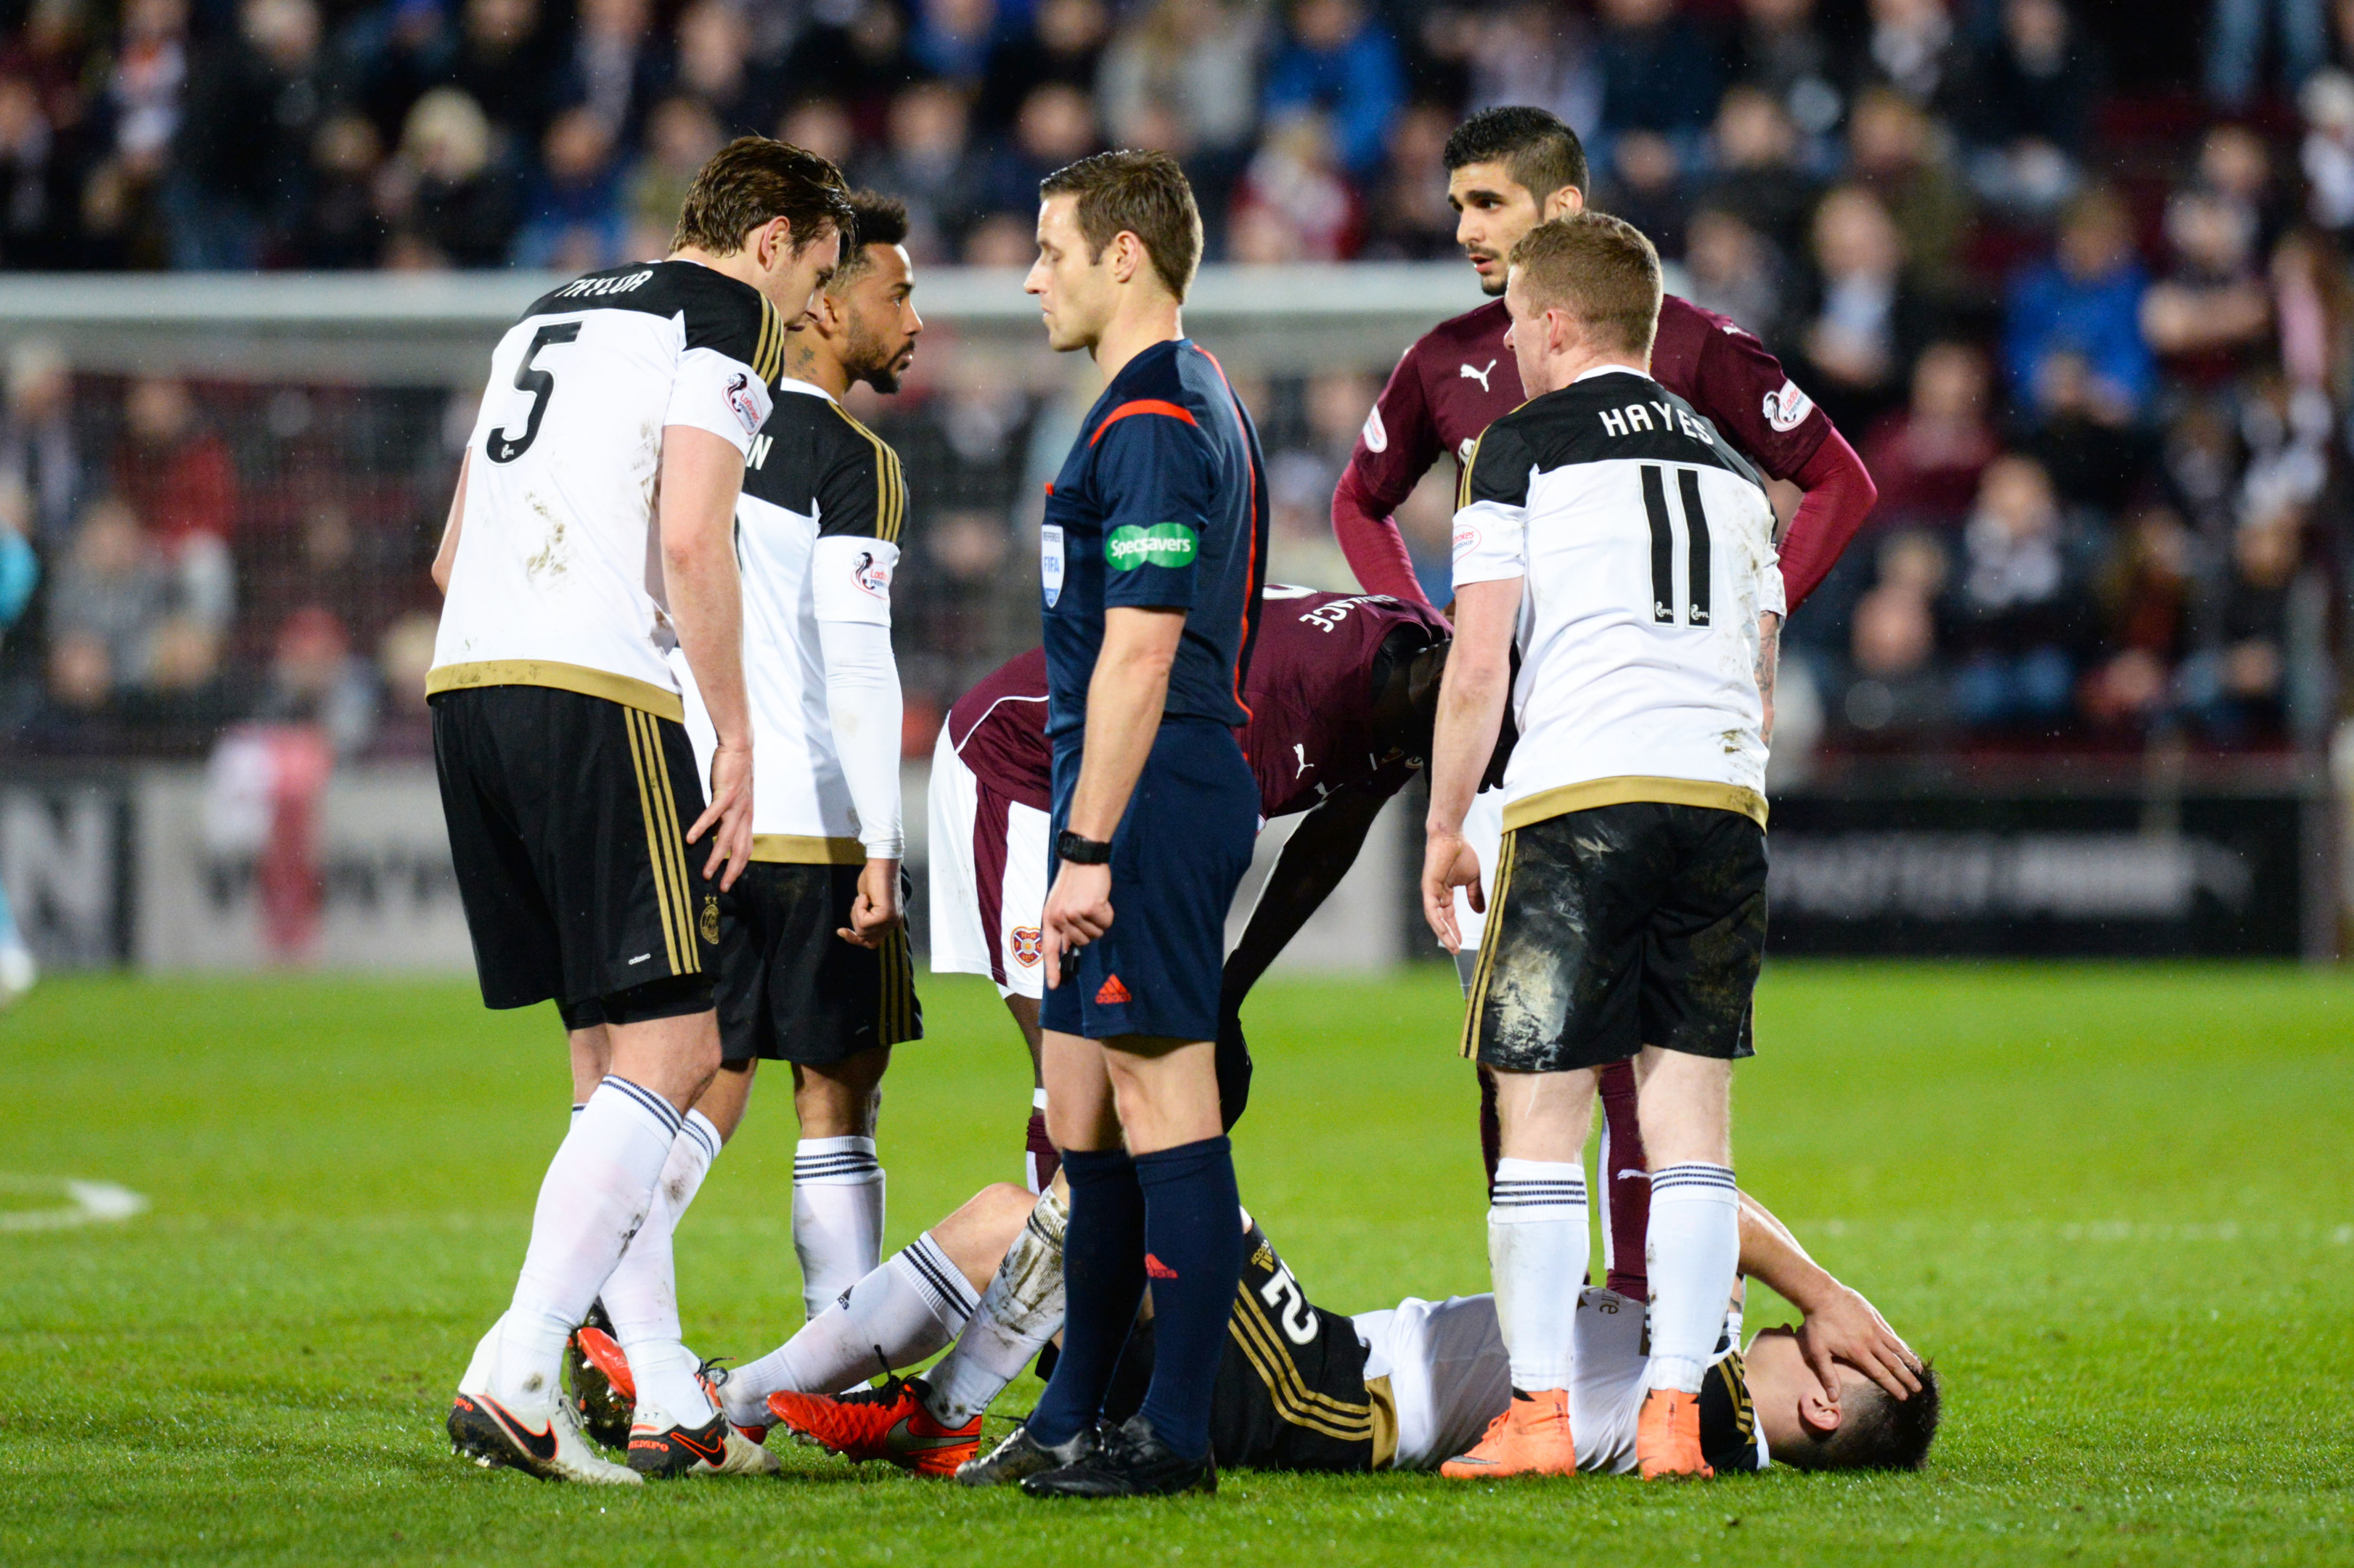 Ryan Jack picked up an injury in the 2-1 defeat to Hearts.